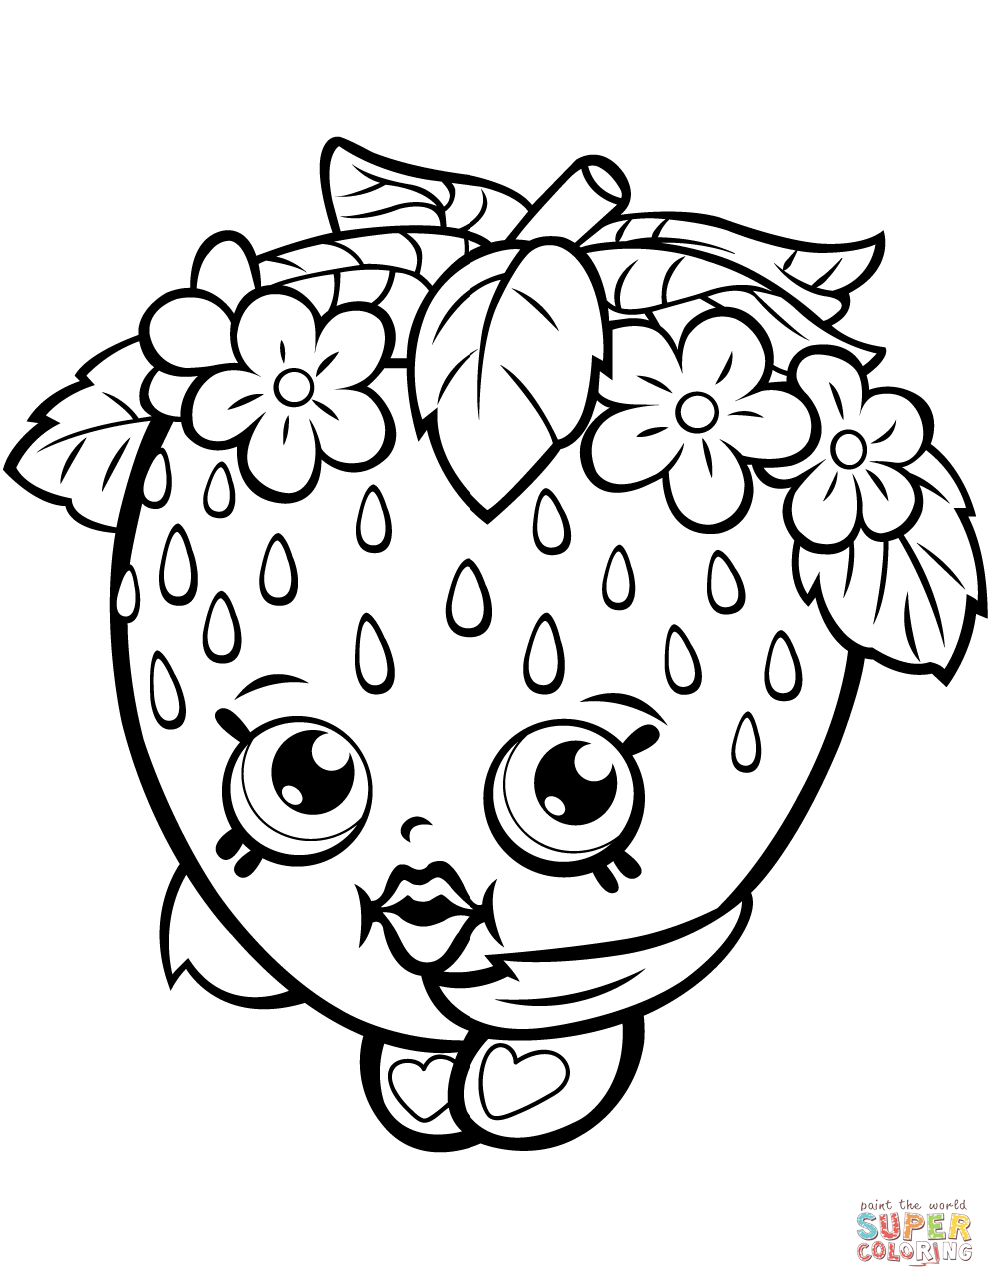 graphic relating to Shopkins Printable Color Pages named Strawberry Kiss Shopkin coloring web site Free of charge Printable